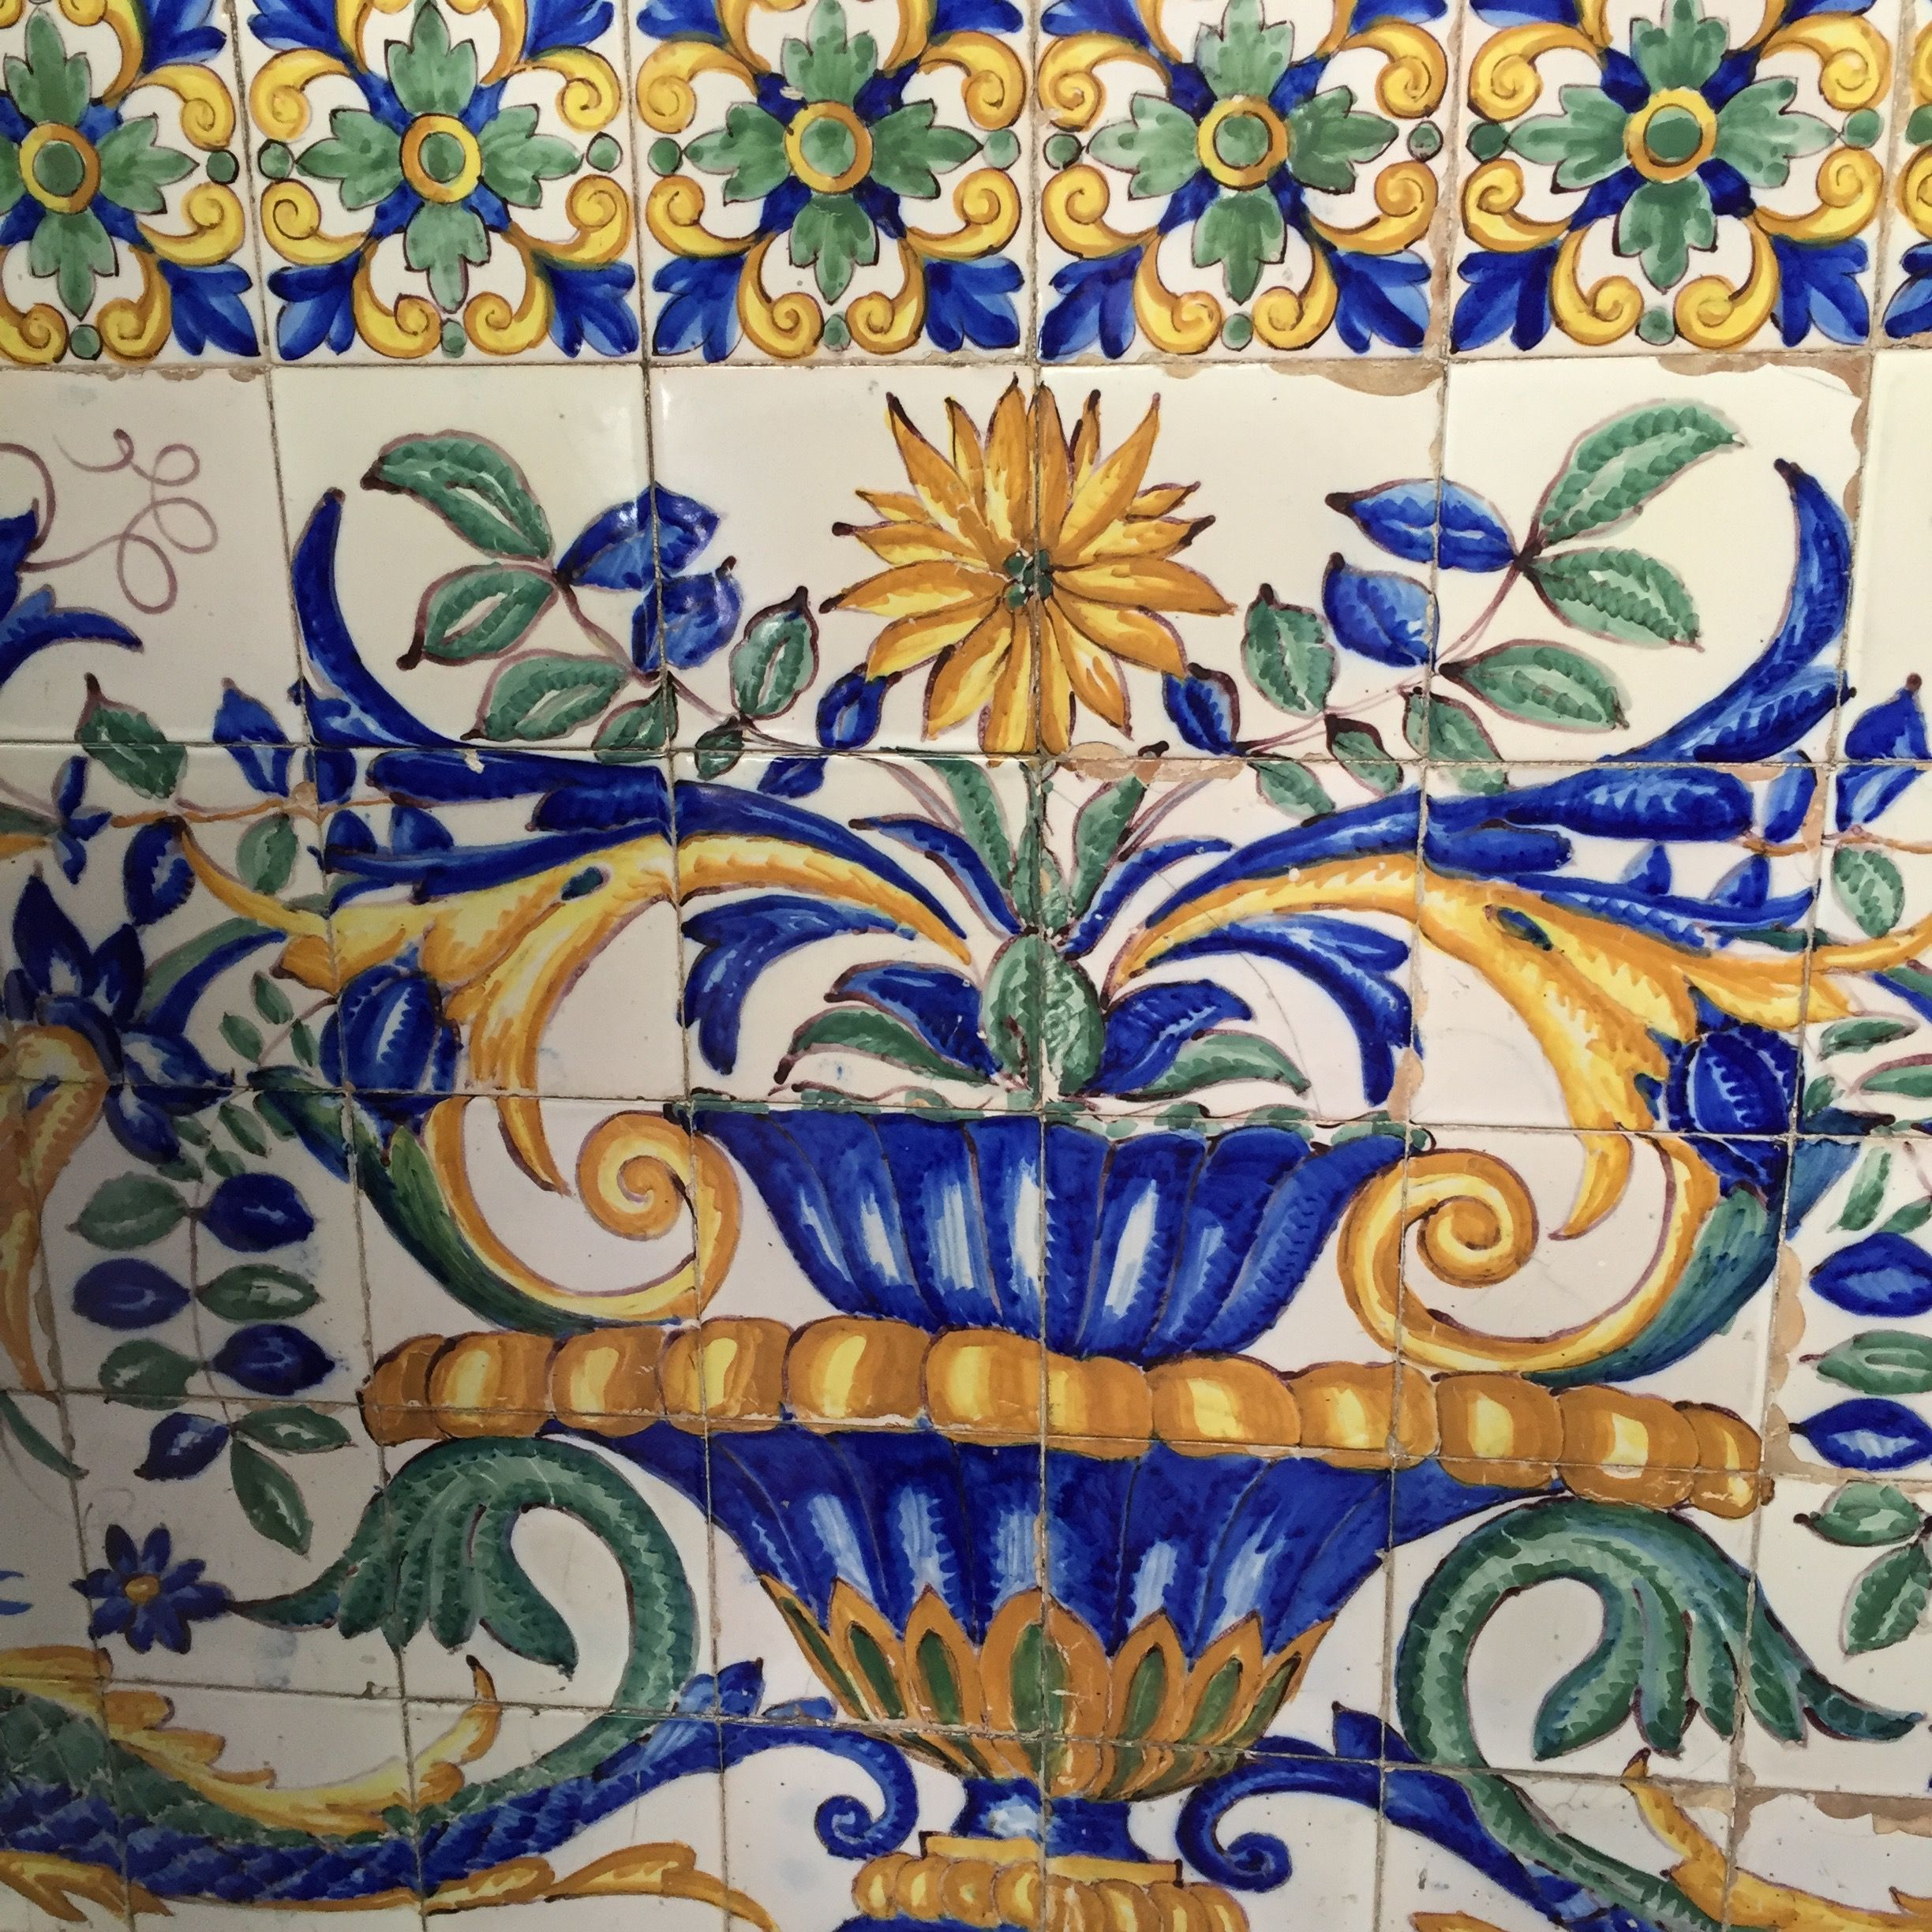 Floral Design And The Use Of Blue Greens And Yellow Similarities